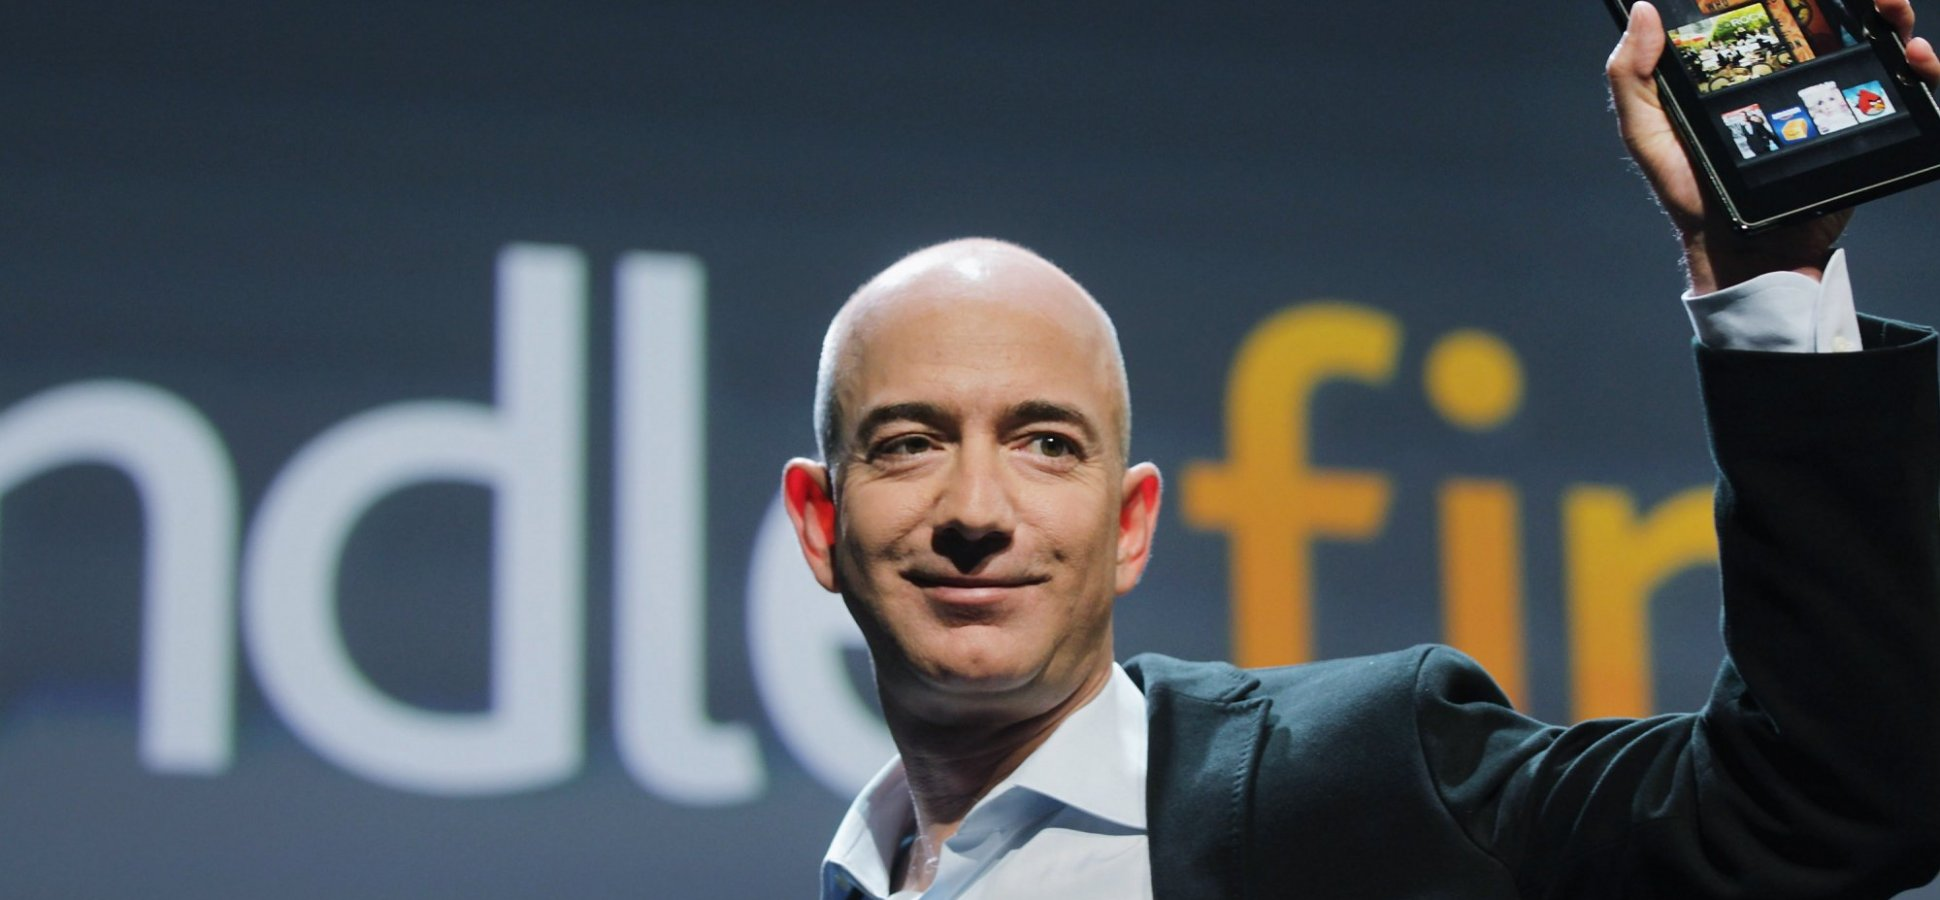 Jeff Bezos Says It S Always Day 1 At Amazon Here S The Big Problem